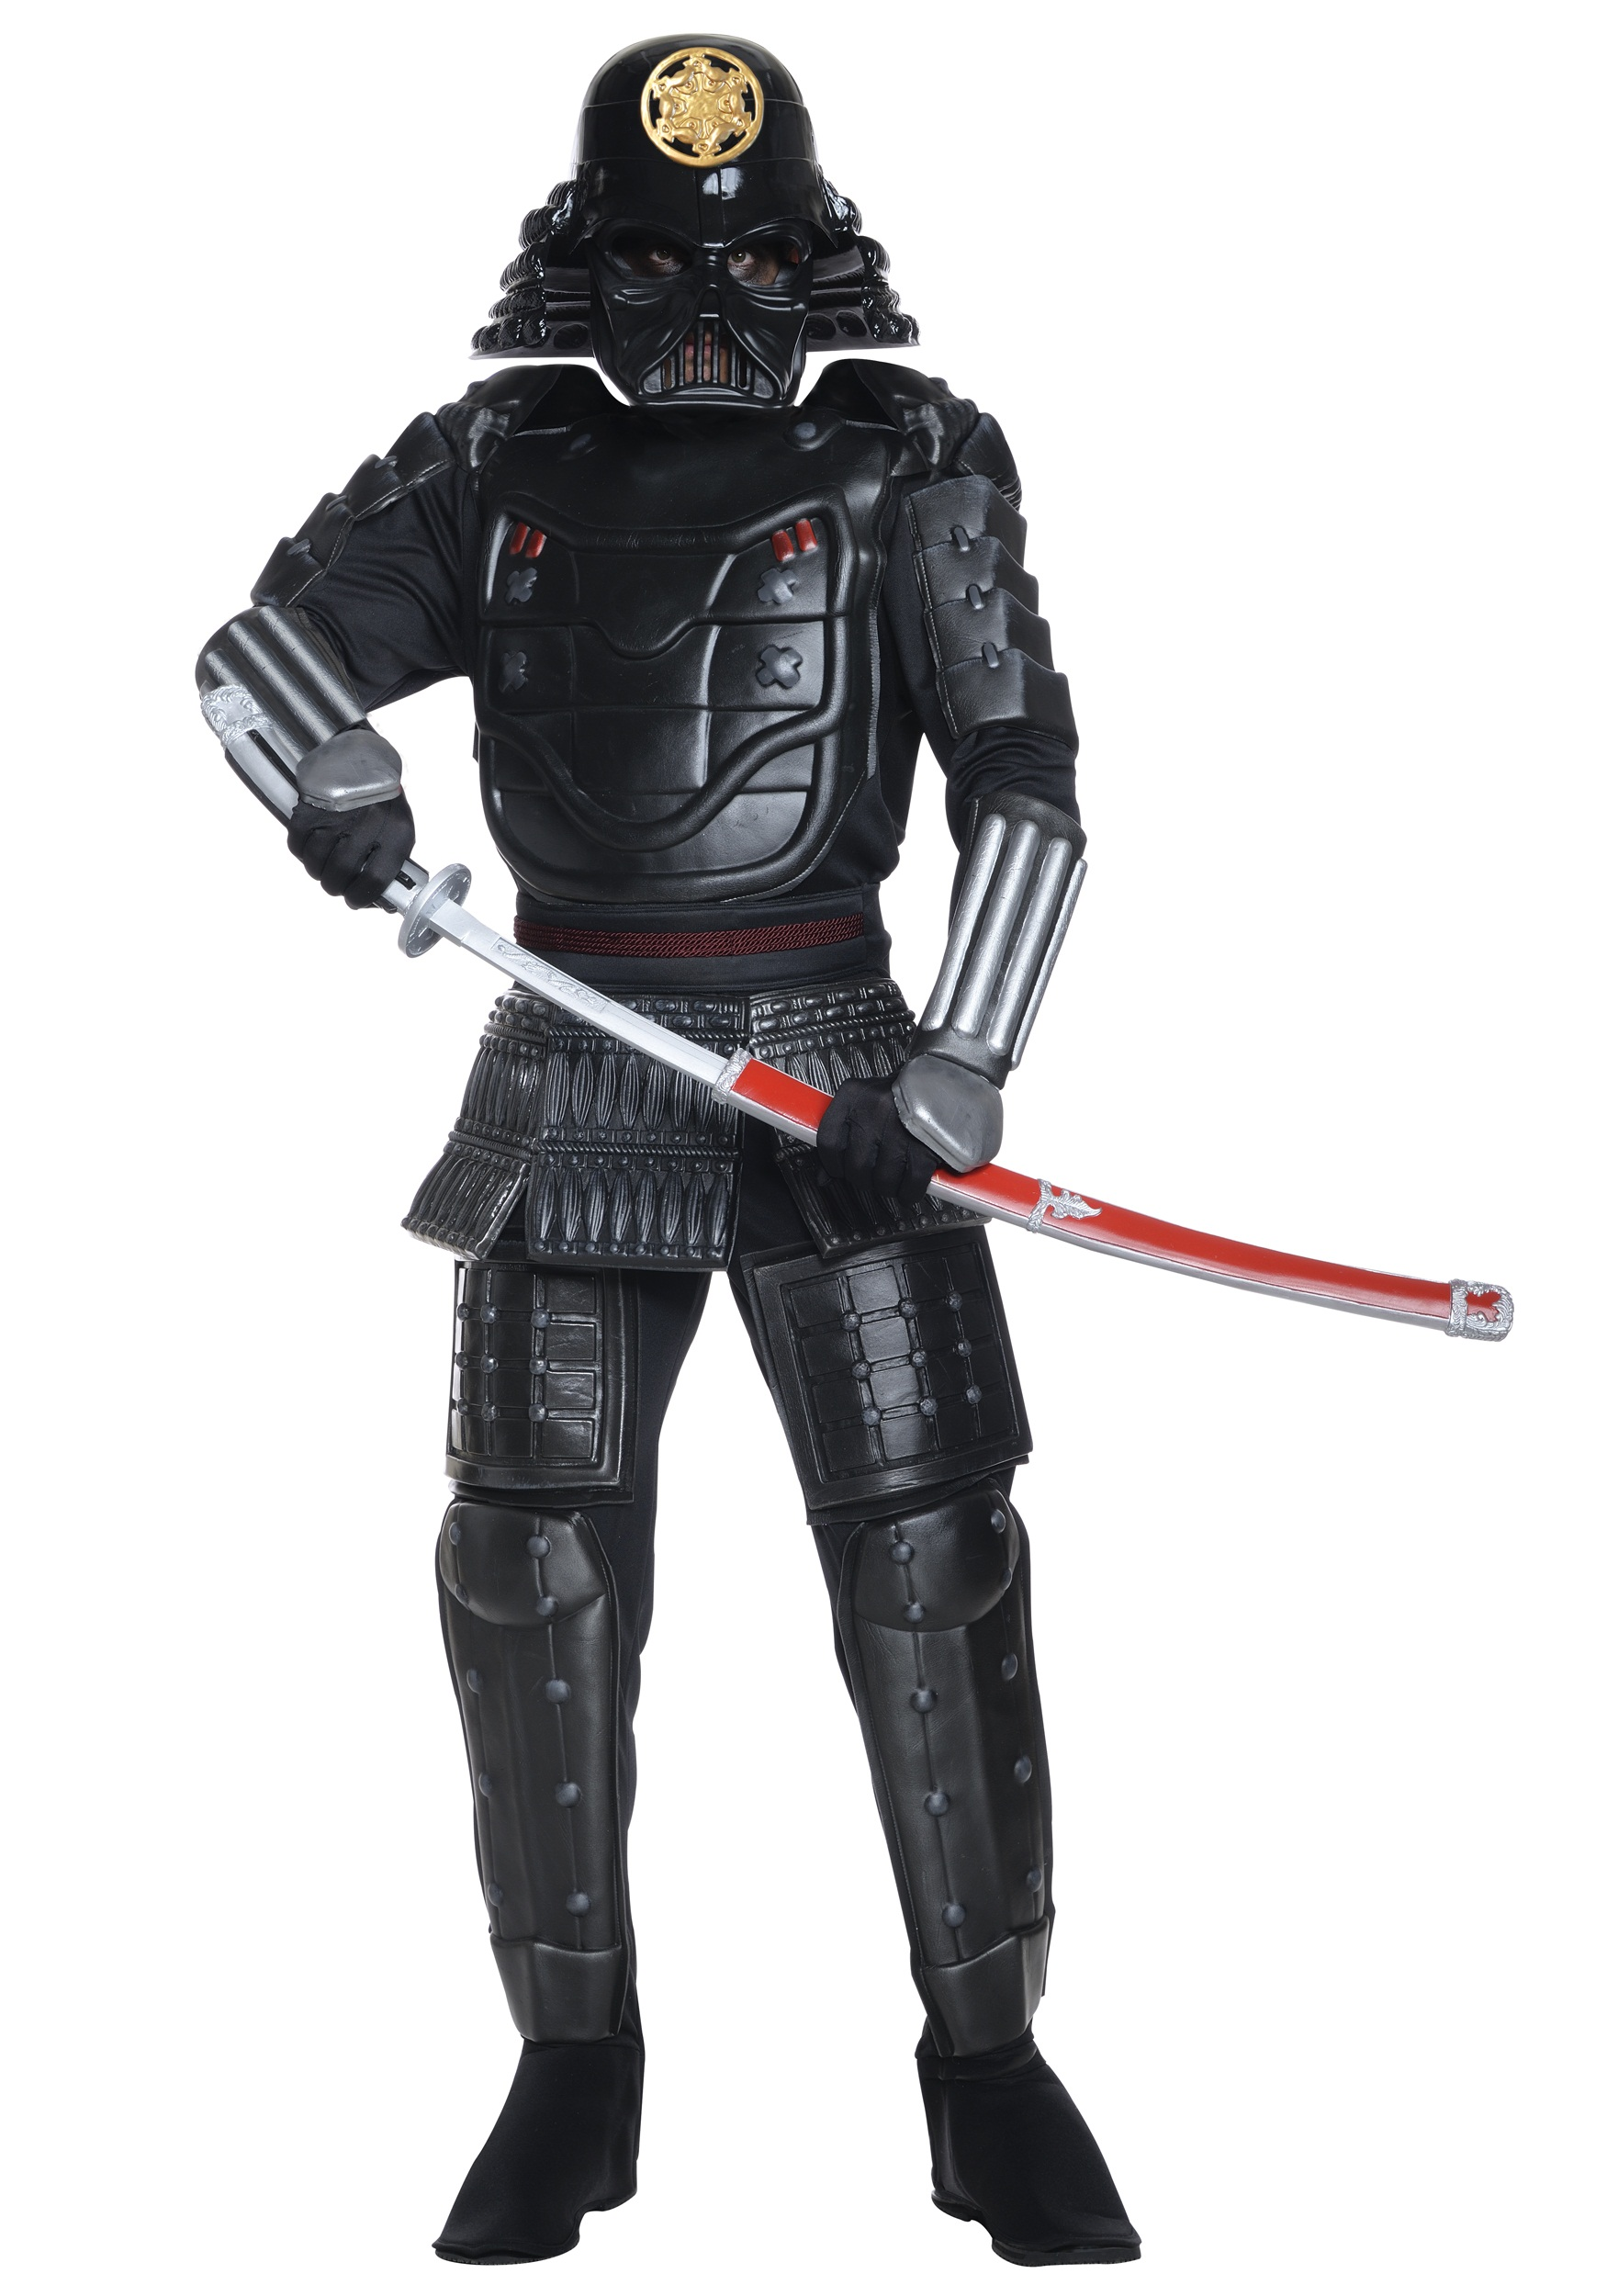 samurai darth vader costume. Black Bedroom Furniture Sets. Home Design Ideas